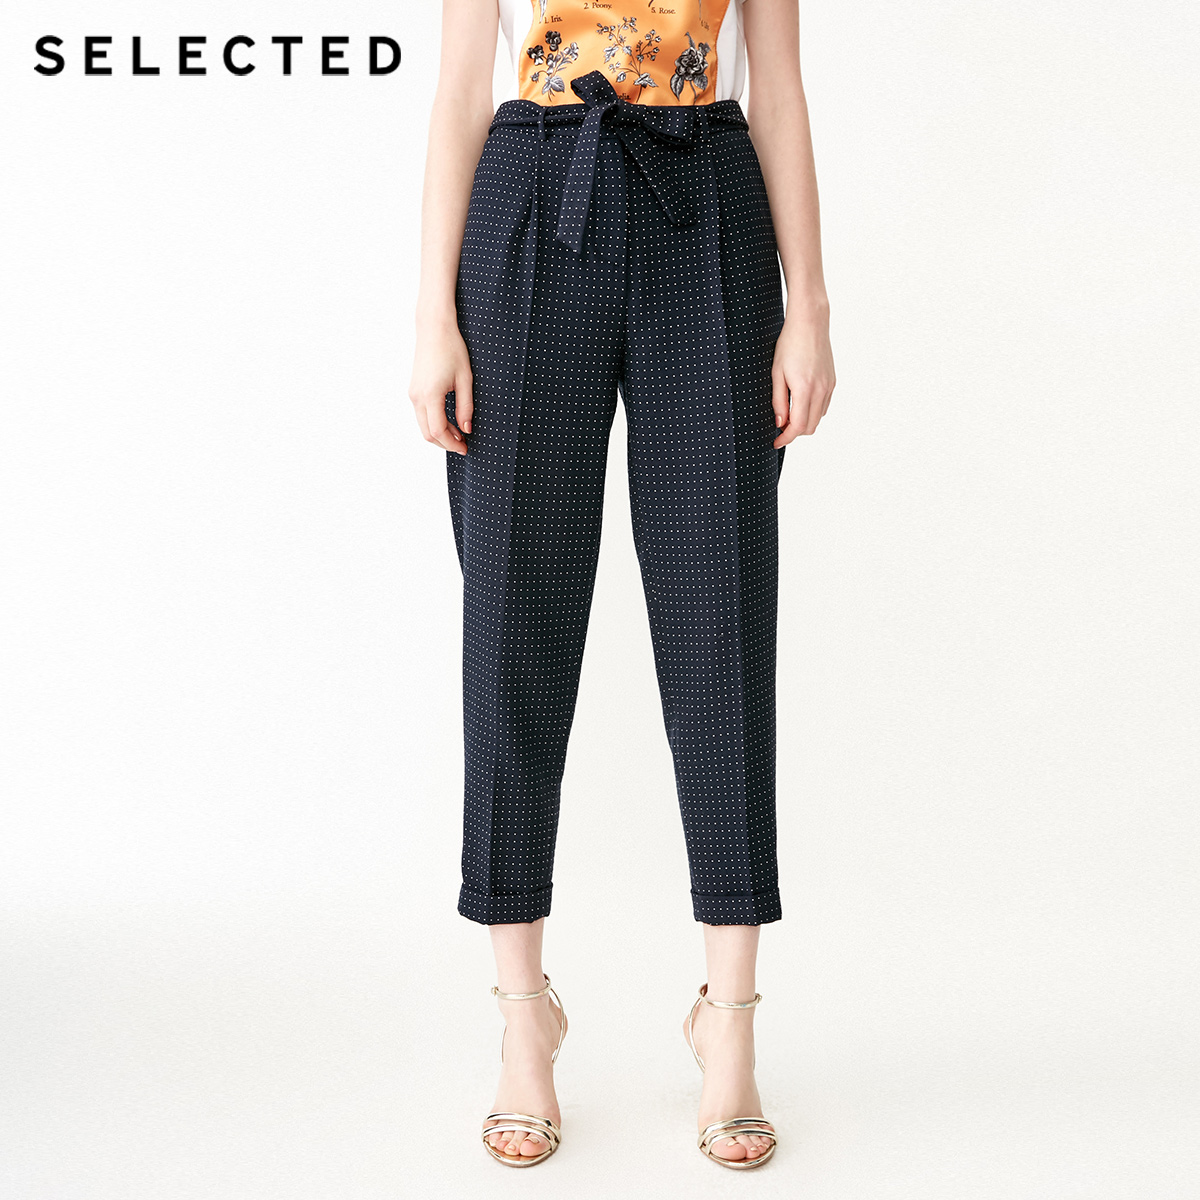 SELECTED Women's Spring Polka Dots Business-casual Crop Suit Pants SIG 419118506